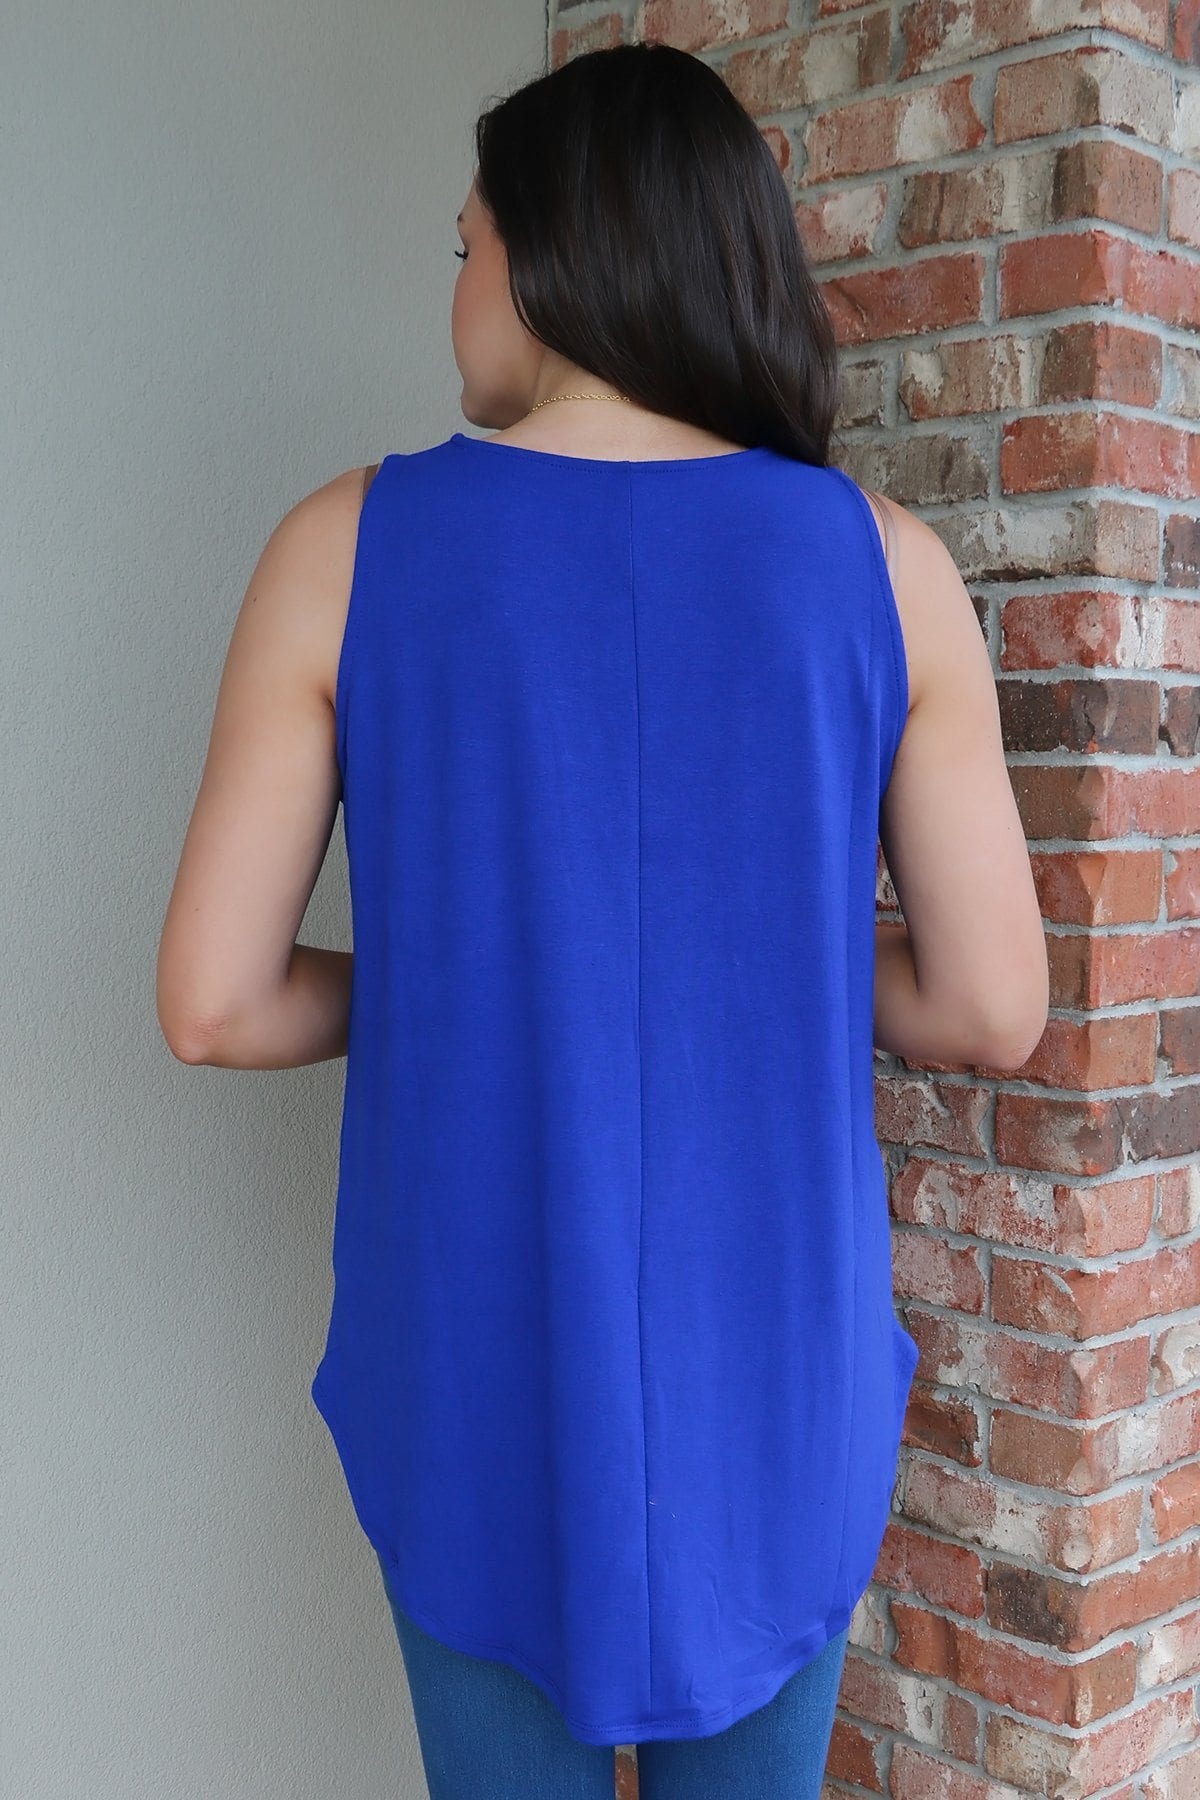 TAMALYN Tank - Royal BASICS 2100 denim blue